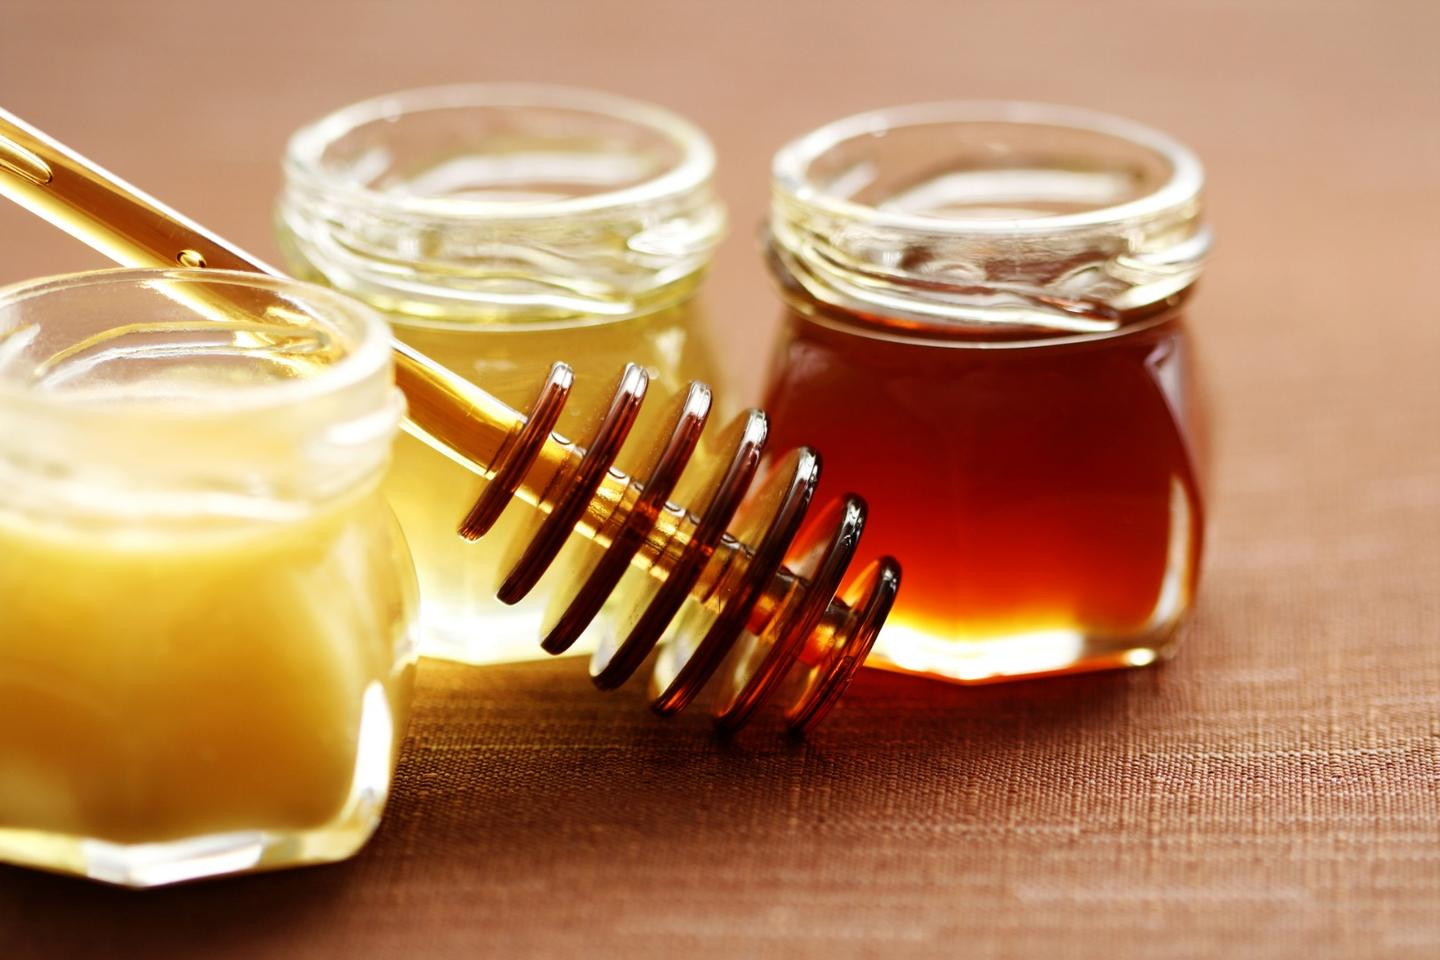 Official advice recommends self-care, including taking honey, for many coughs